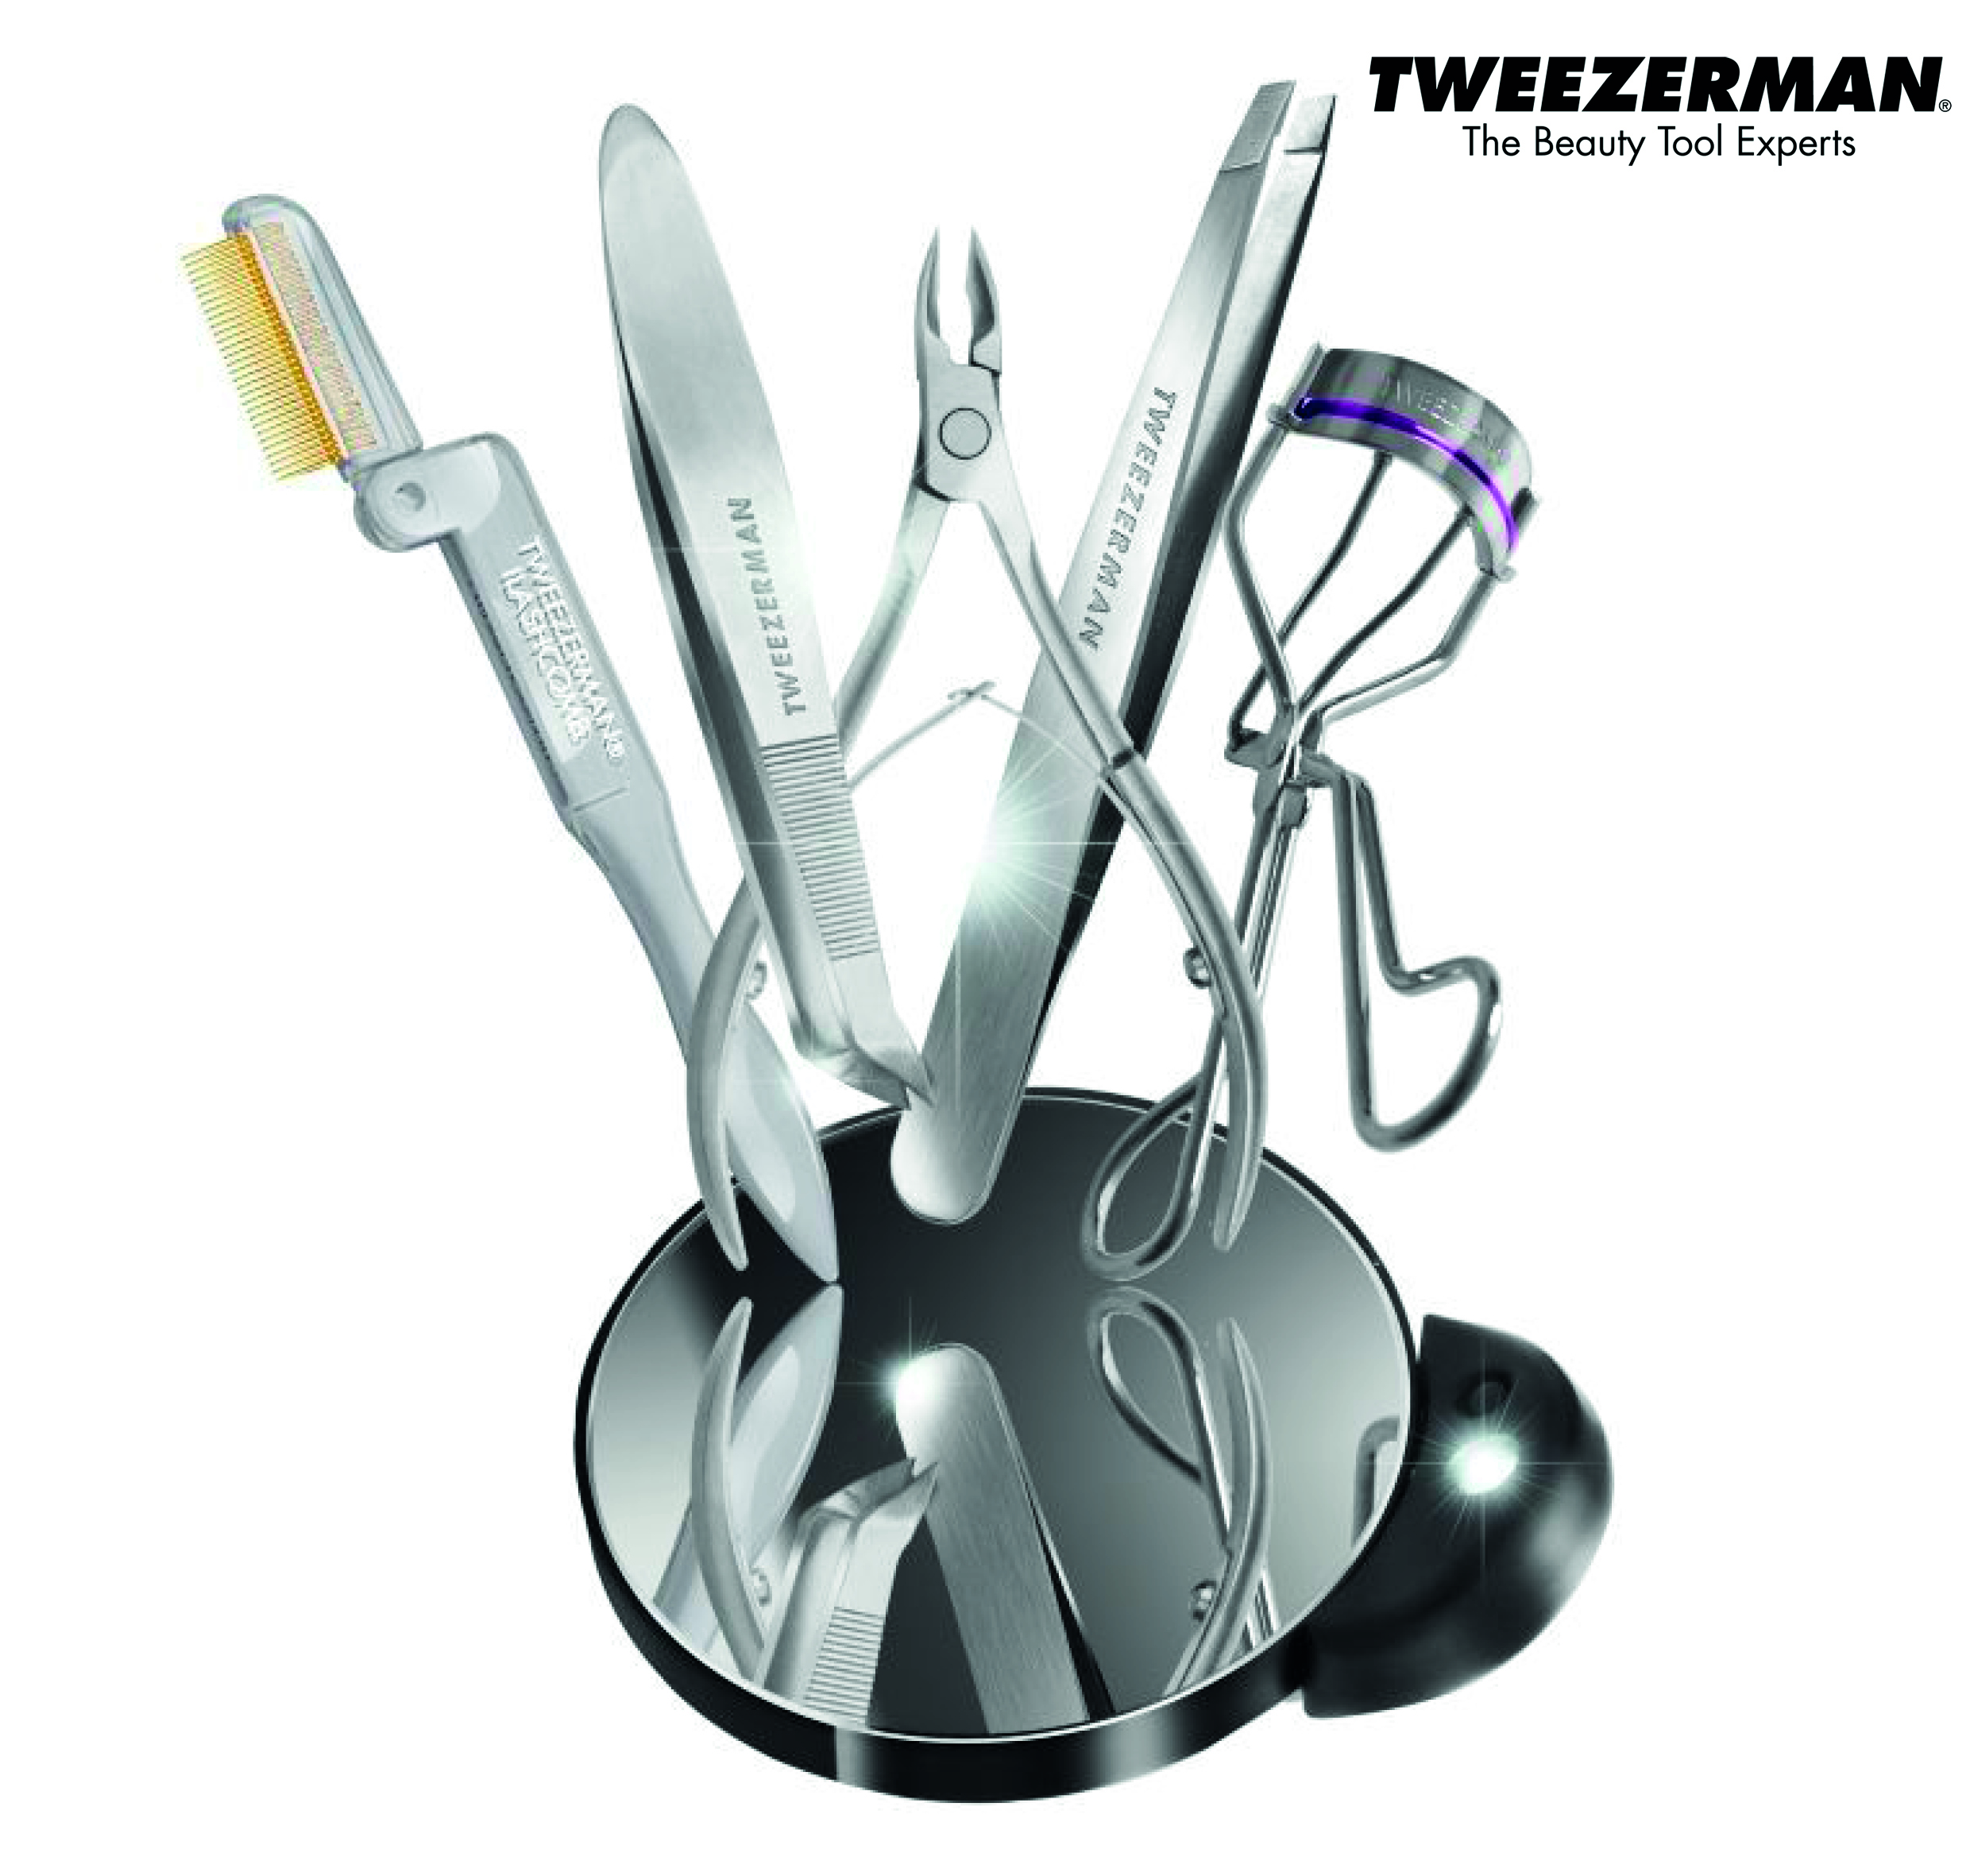 TWEEZERMAN Tools